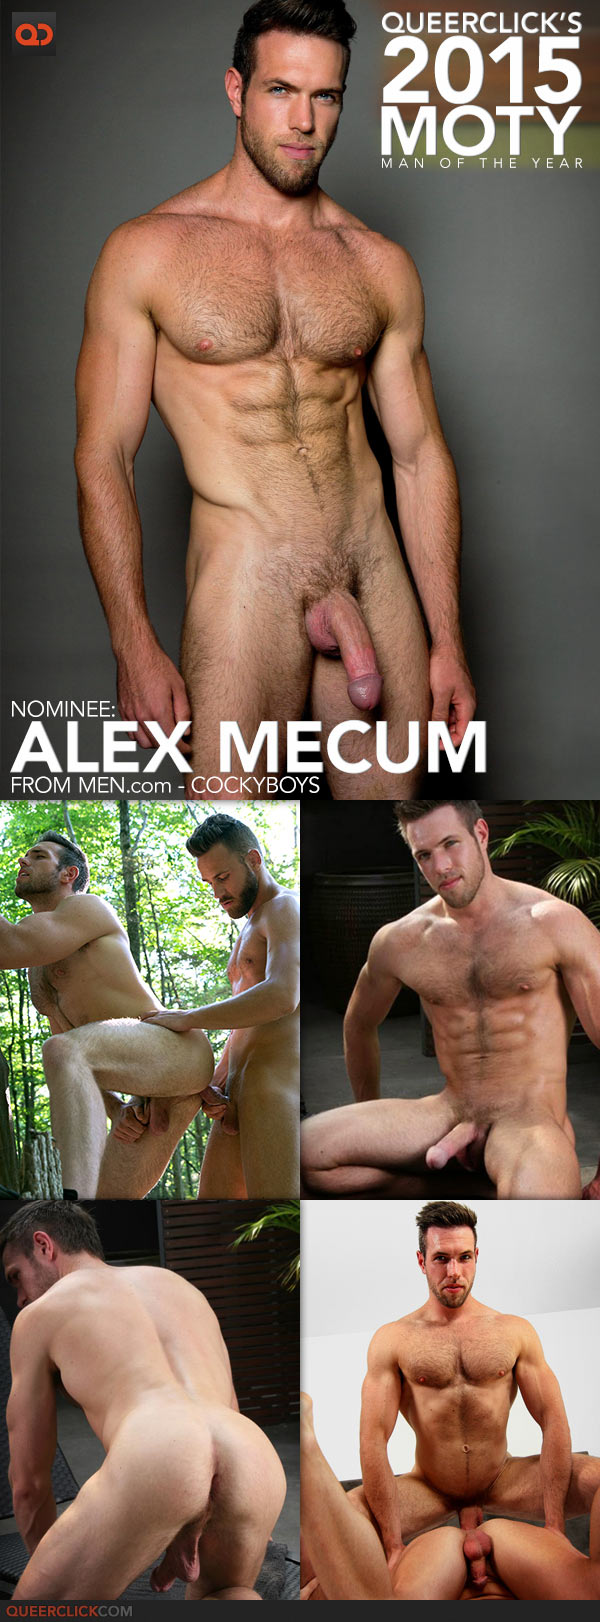 QueerClick's 2015 Man of the Year! Alex Mecum